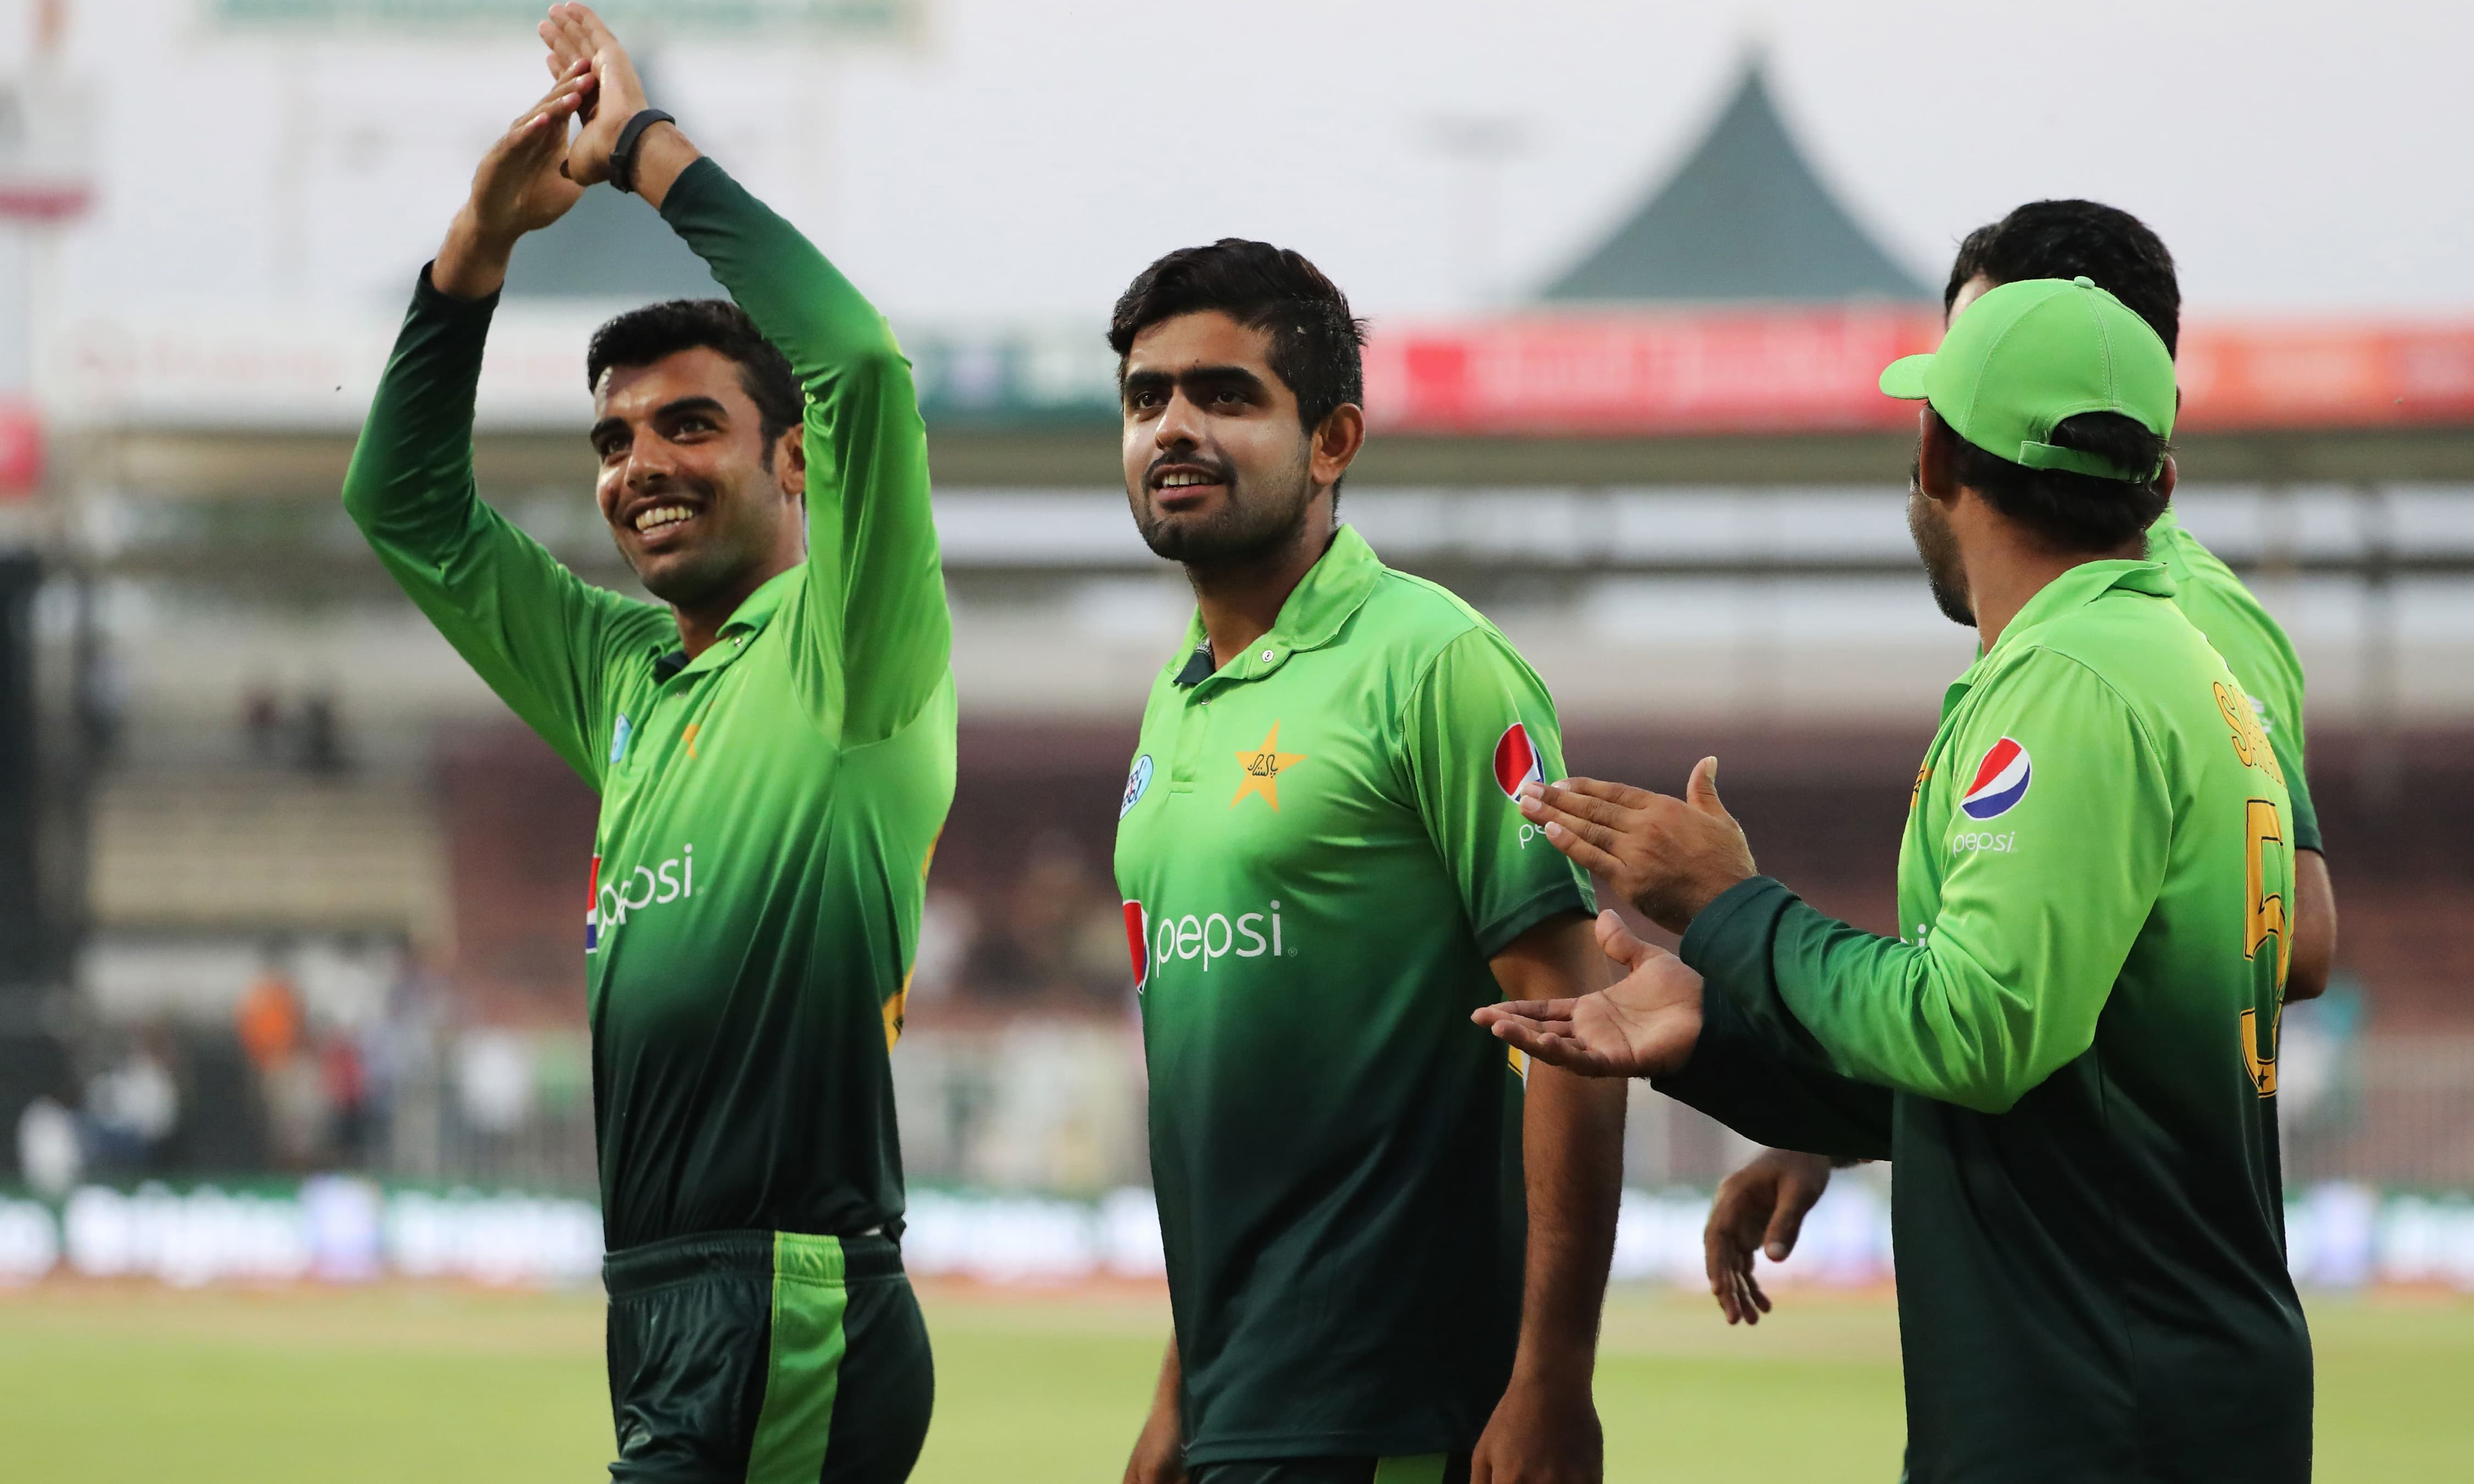 Fifth ODI: Pakistan cruise to nine-wicket victory, complete '